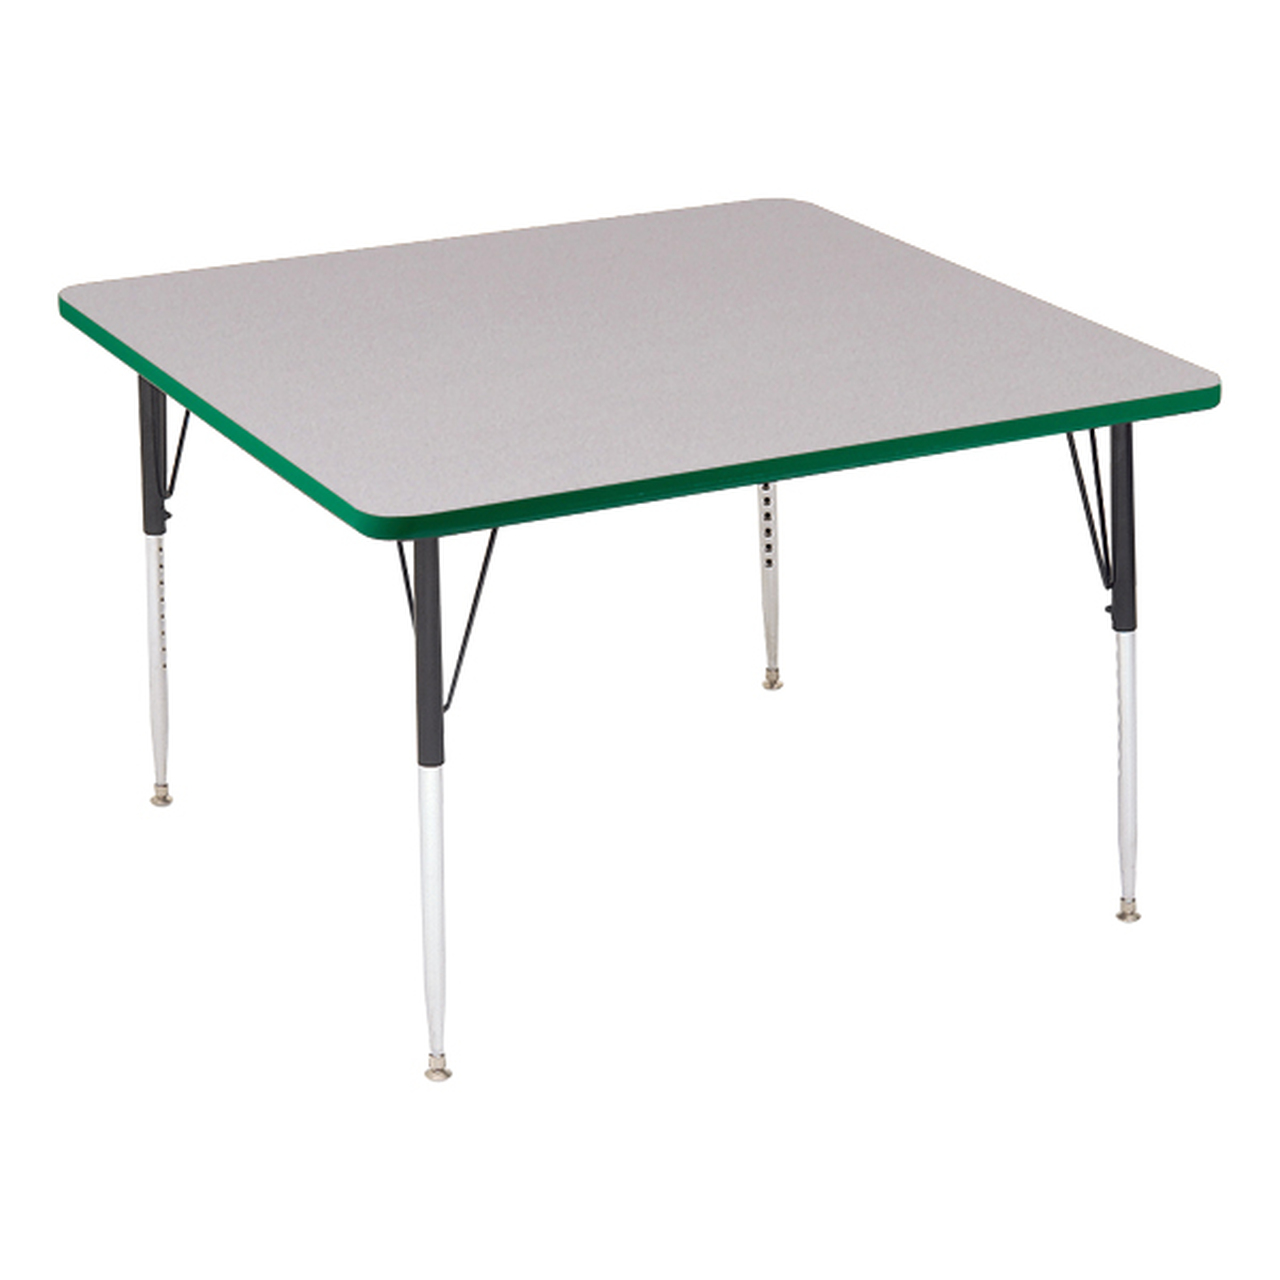 Correll A4242 Sq High Pressure Square Shape Activity Table 42 Inch